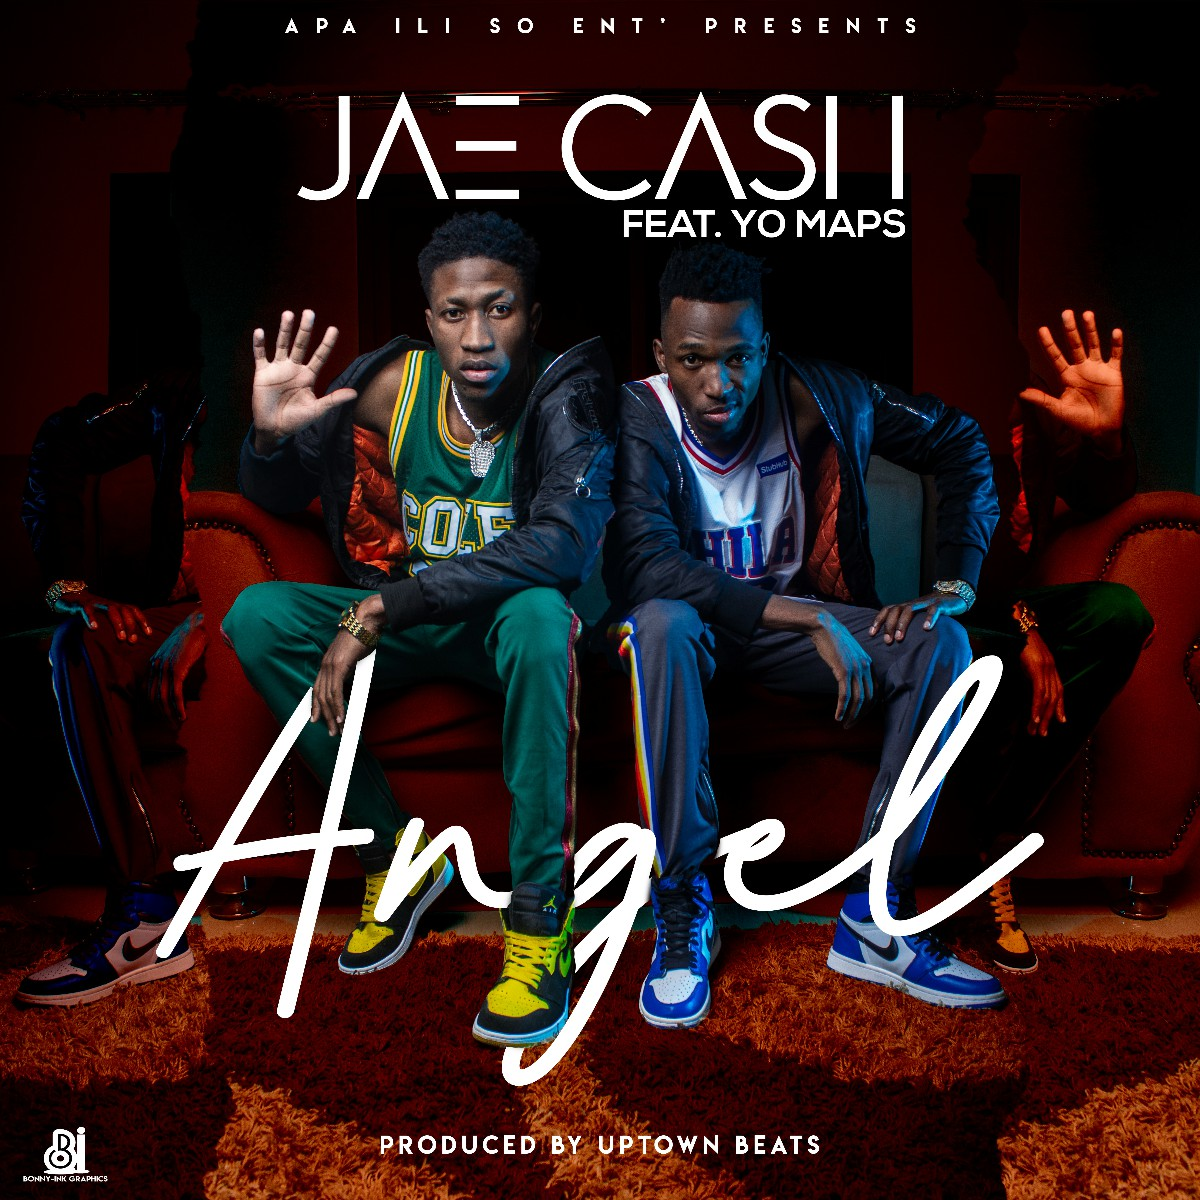 Jae Cash ft. Yo Maps - Angel (Prod. Uptown Beats)